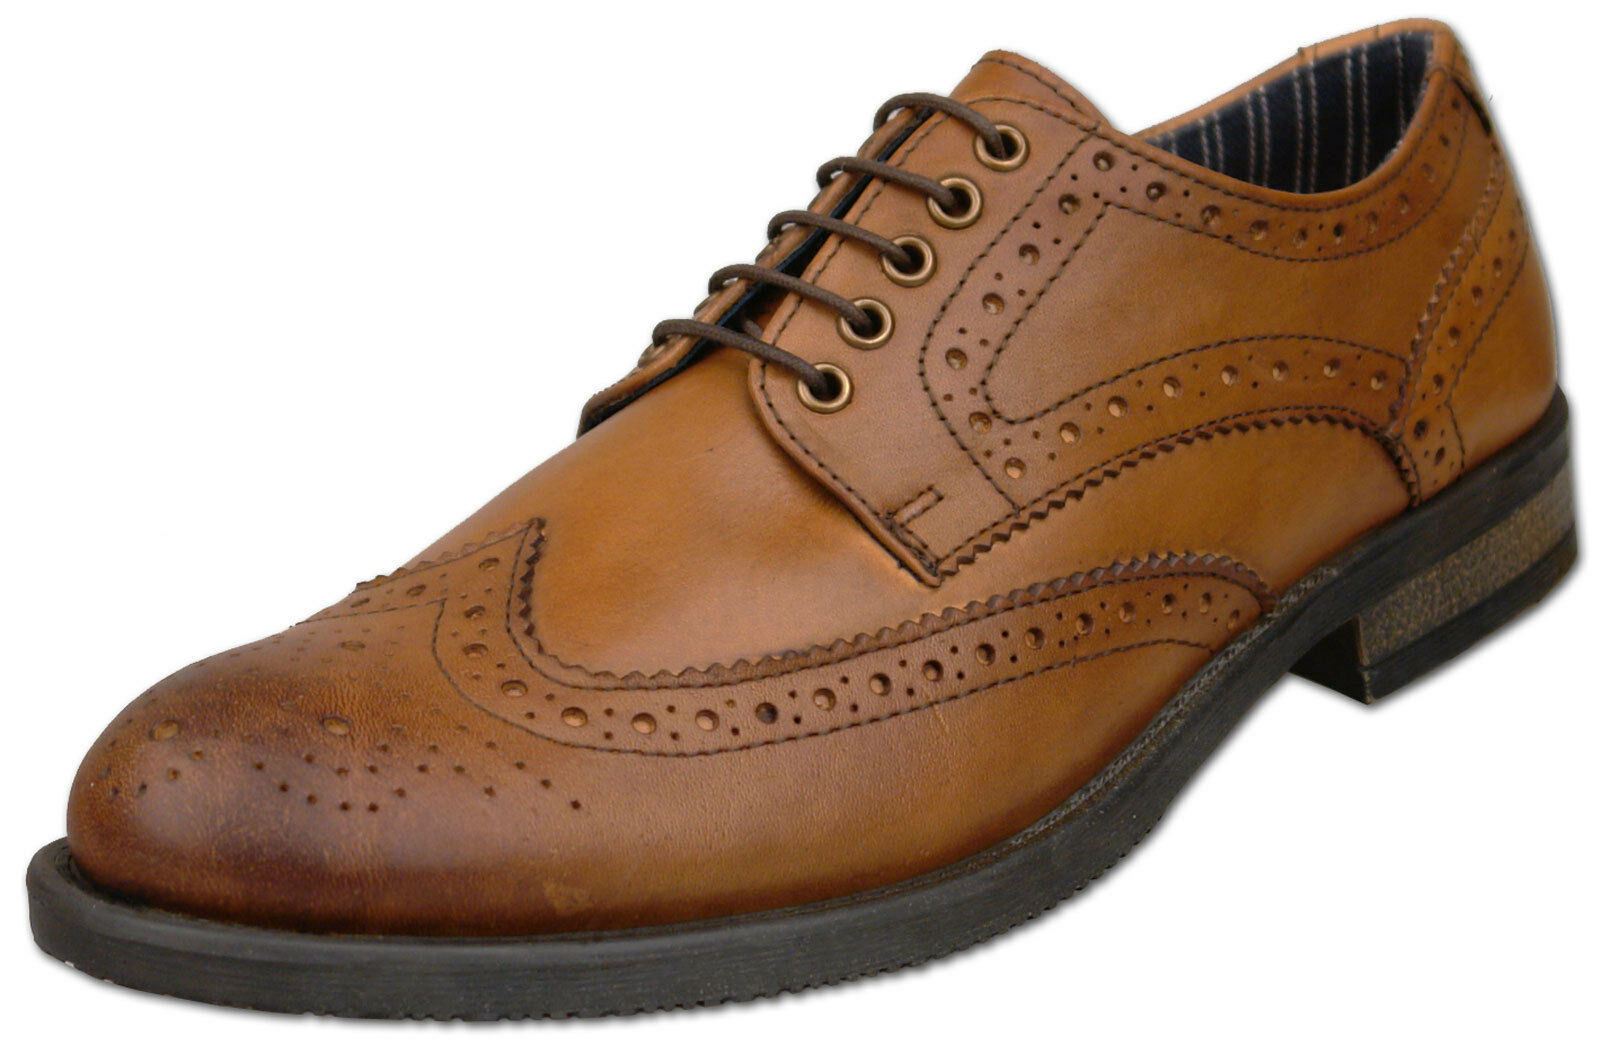 Uomo Lace Brand New Tan Leder Lace Uomo Up Formal Brogue Schuhes Größe 6 7 8 9 10 11 12 a58619